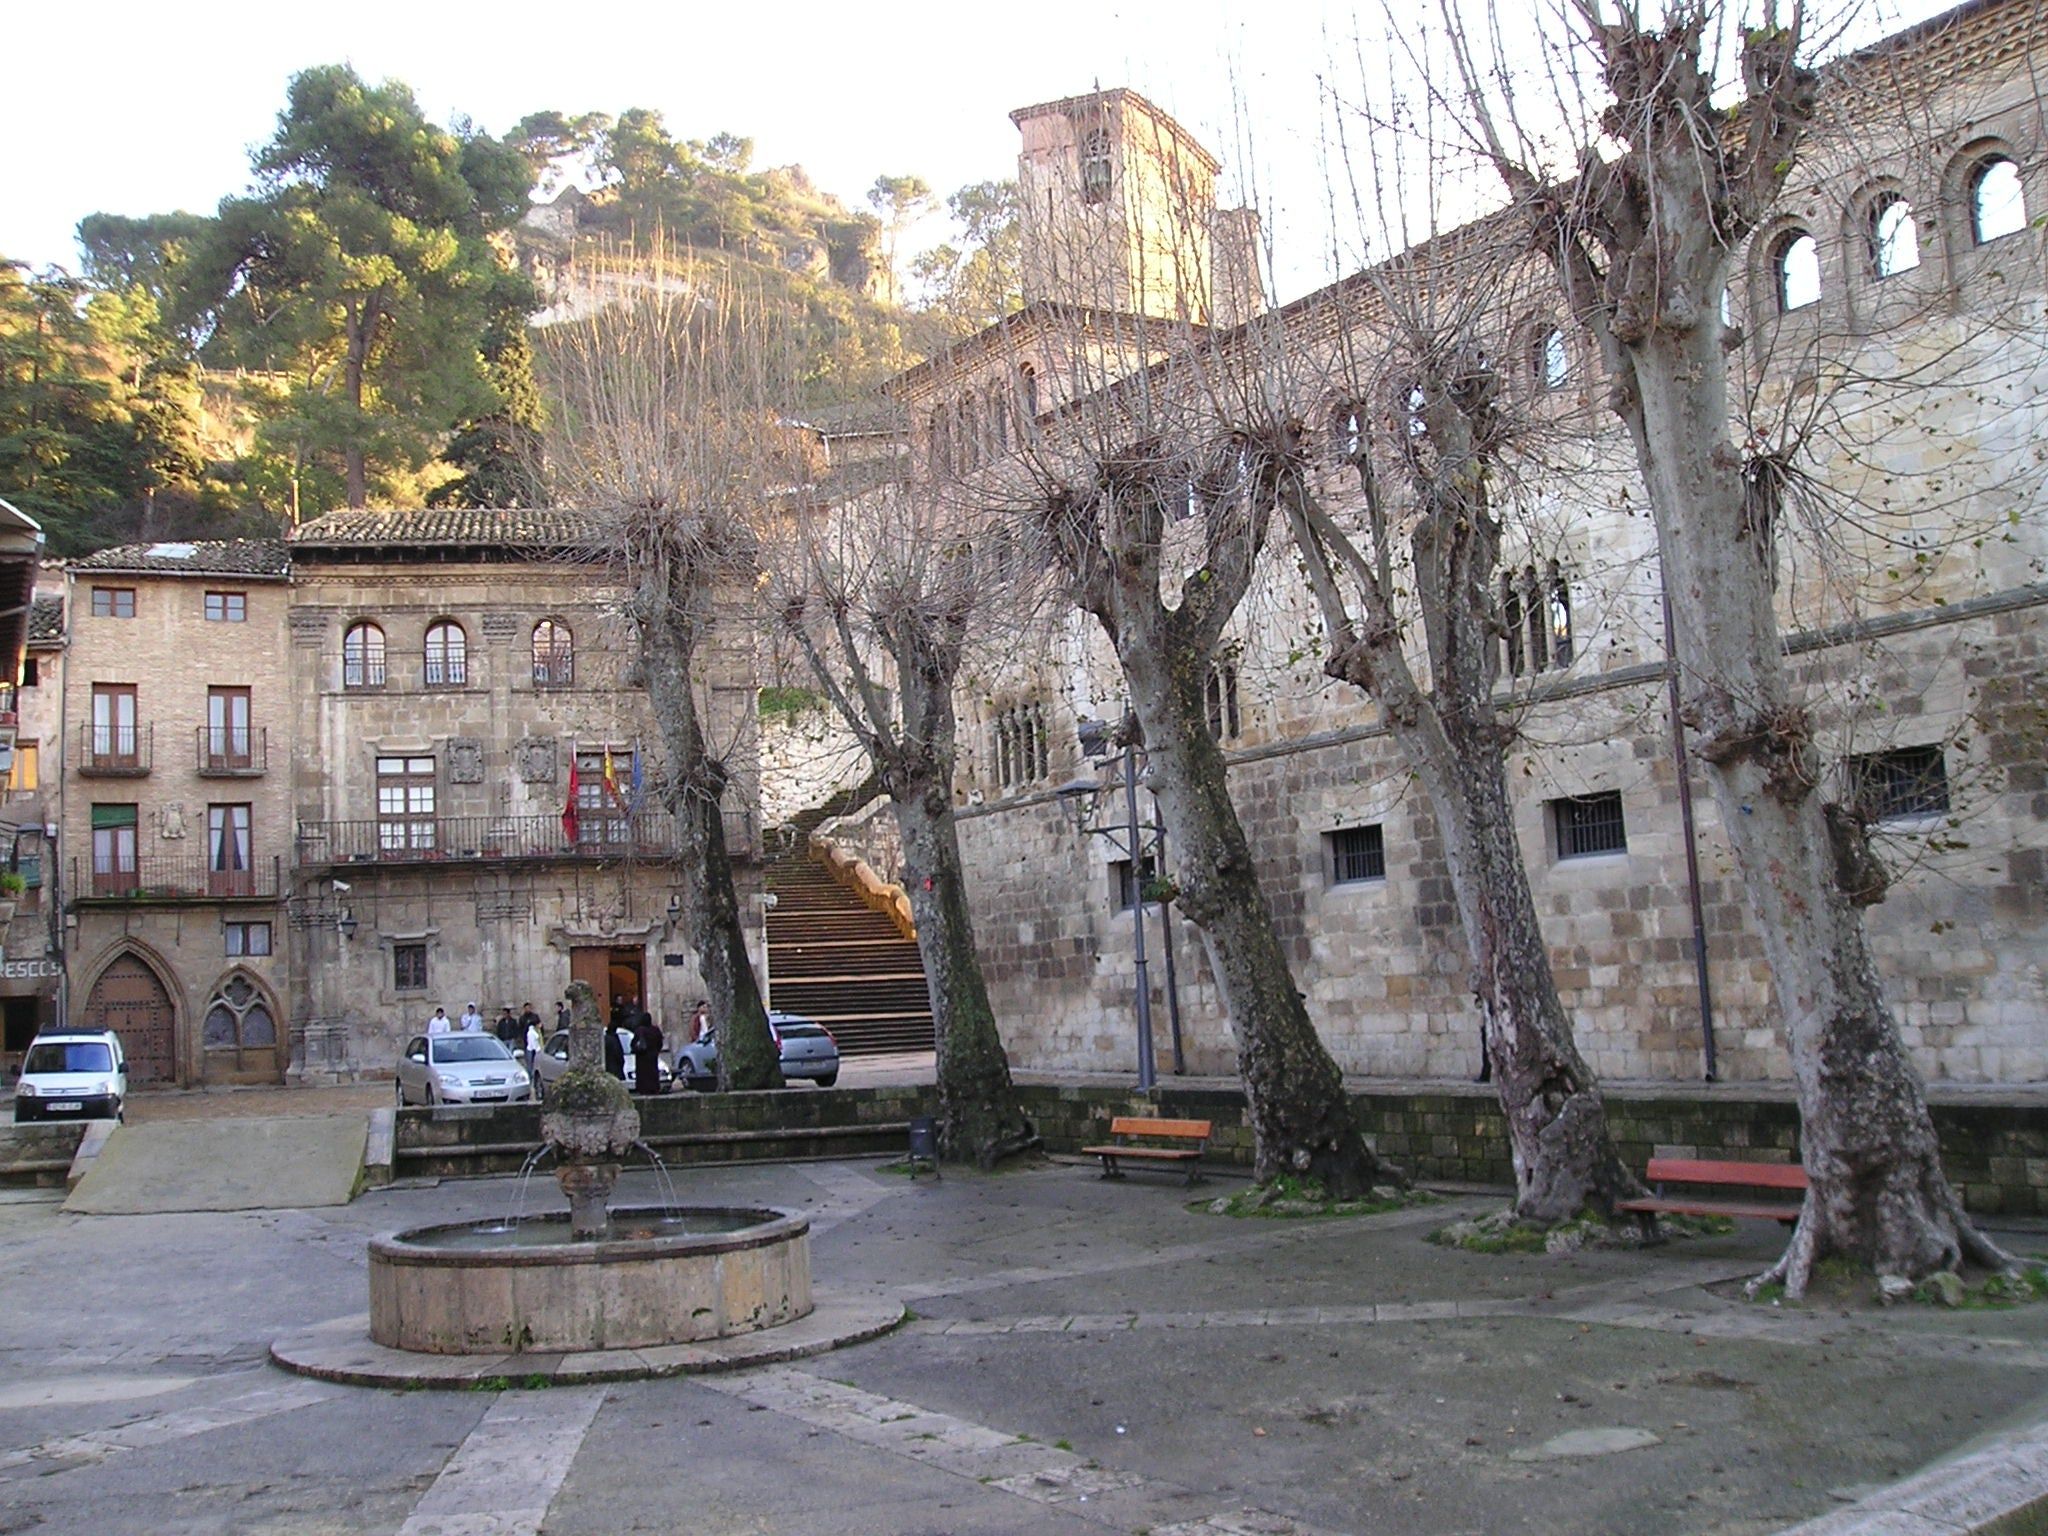 Palace of the Kings of Navarre